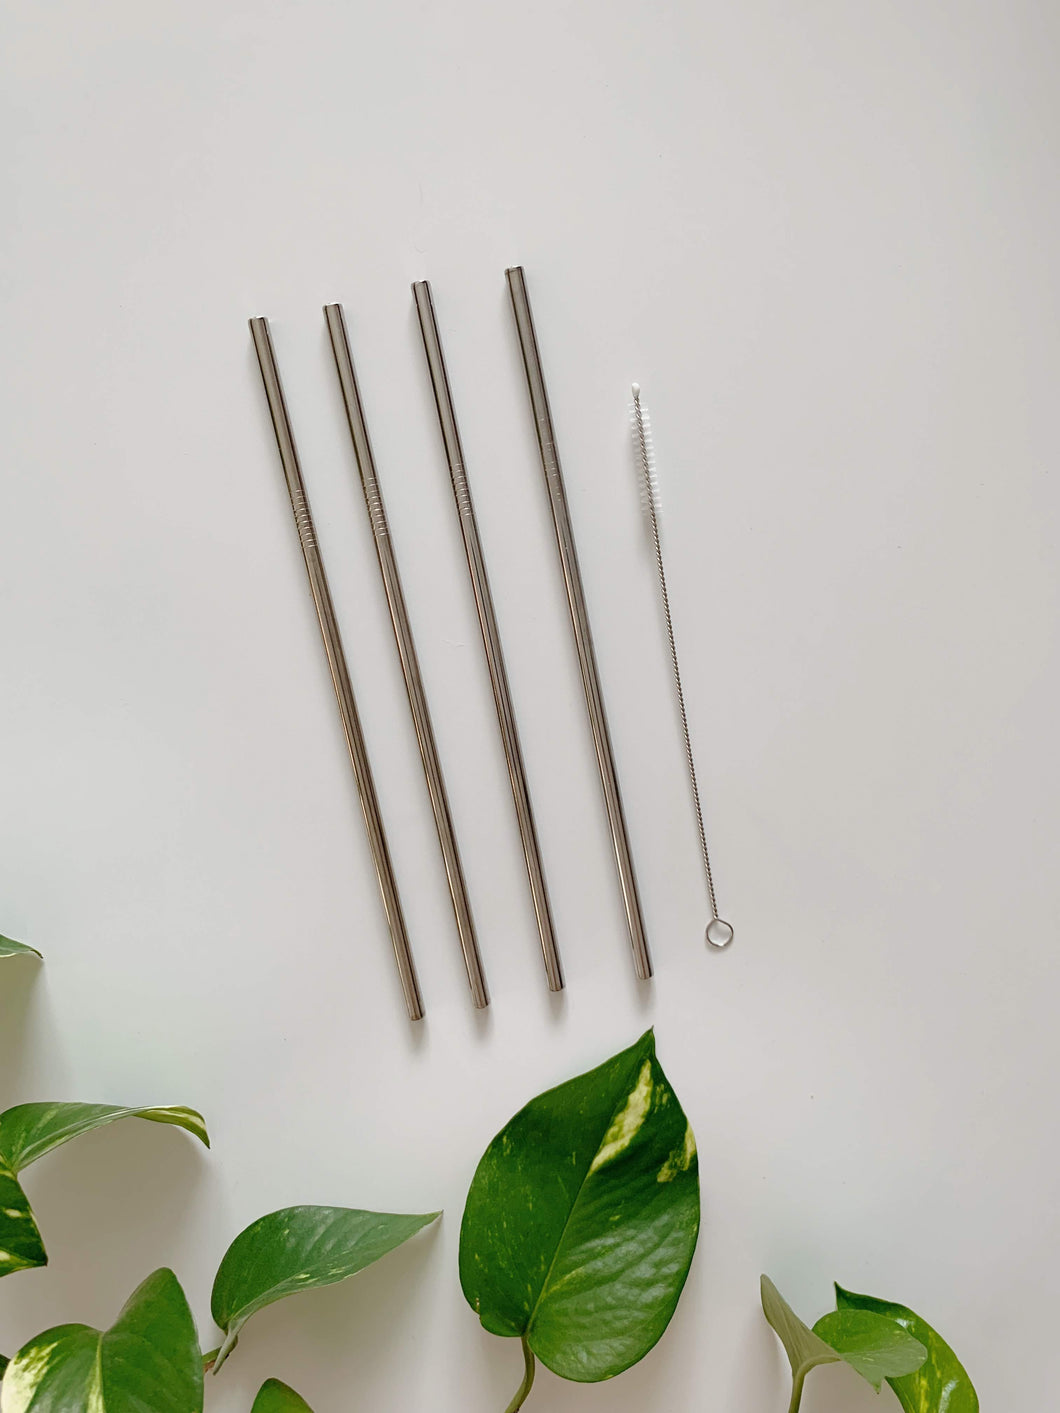 8 inch Steel Straws Straight